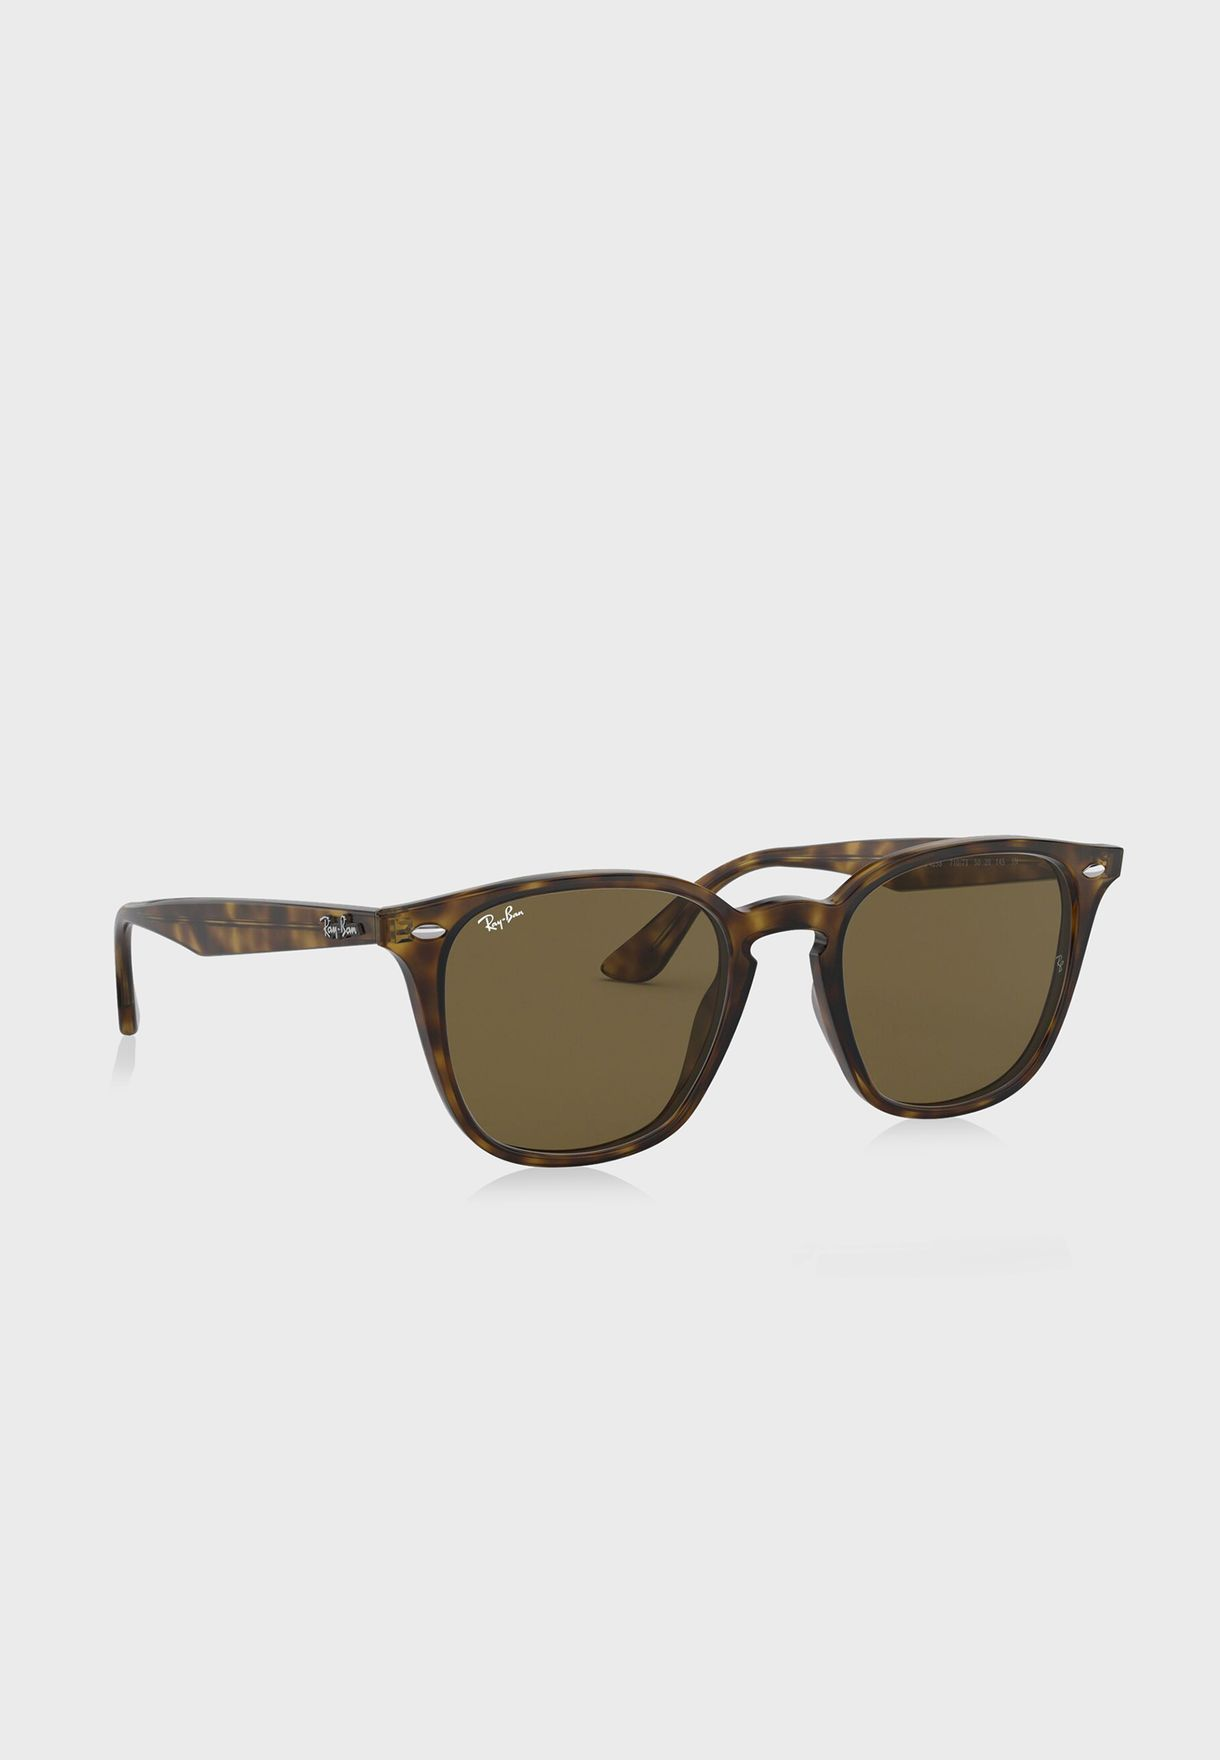 d7c2955ecf0 Shop Ray-Ban browns RB4258 Shiny Havana 8053672636505 for ...